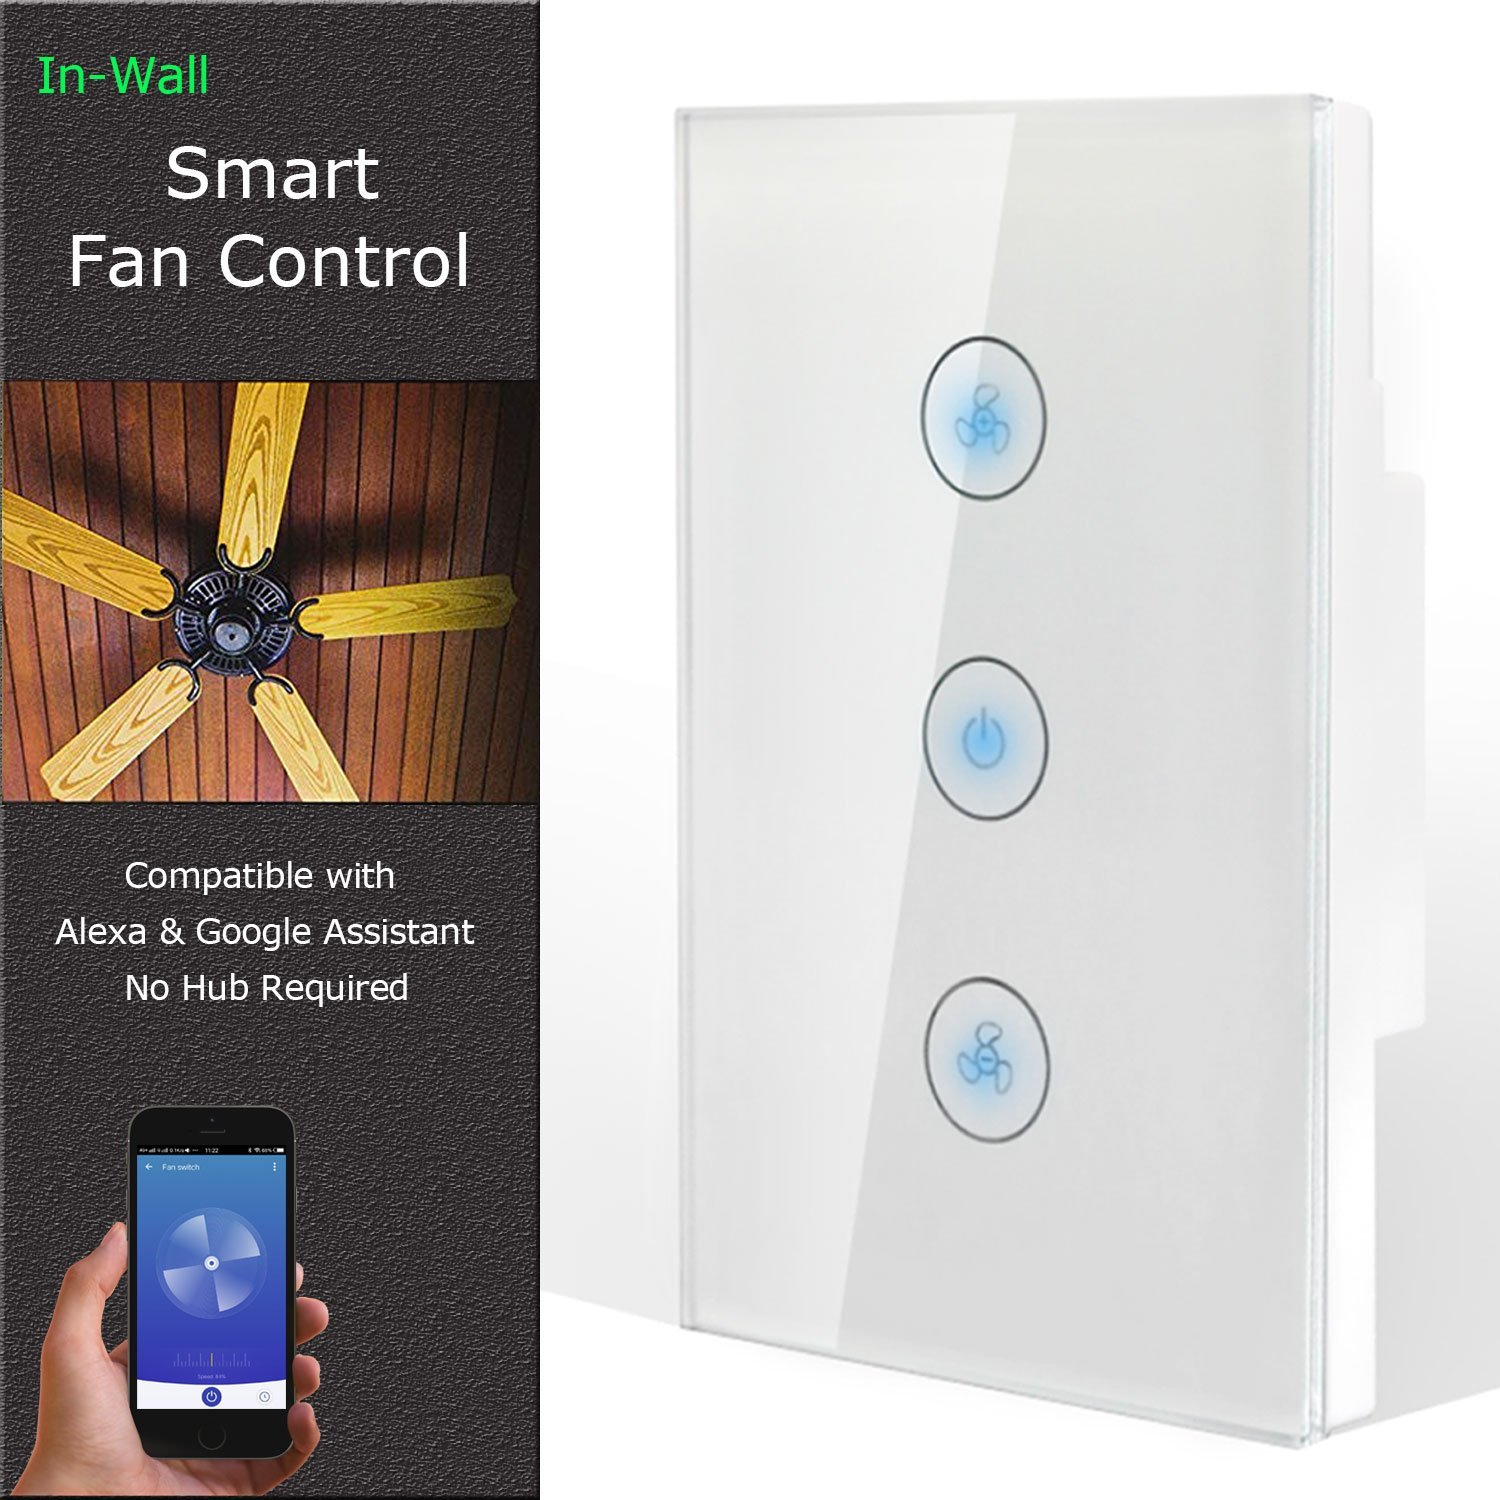 Cool Auto Smart Fan Speed Control Compatible with Alexa and Google Assistant, IFTTT, WiFi Enabled Variable Ceiling Fan Switch, in Wall, Touch Panel, No Hub Required